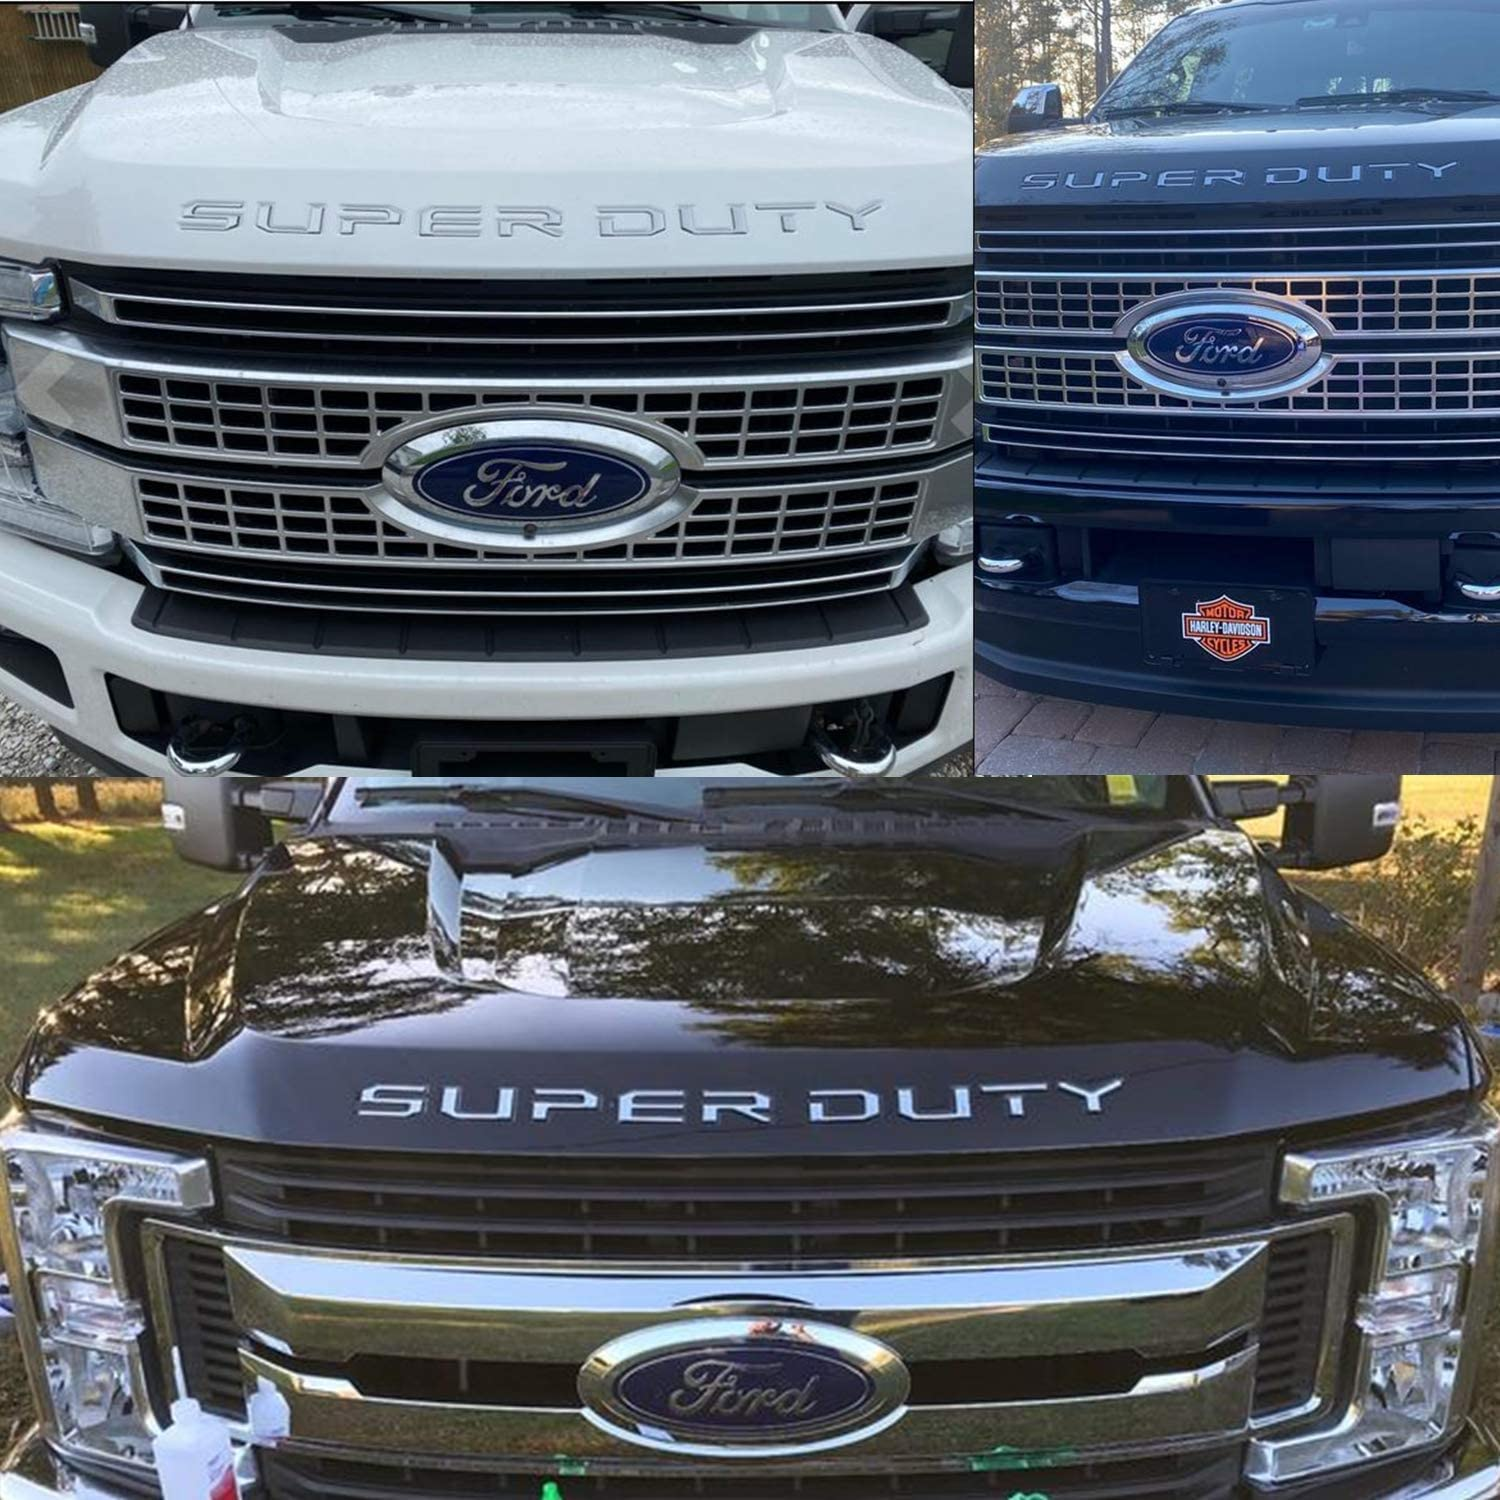 Hood//Grille Letters Inserts Inlays Decals Stickers for 2017-2020 Ford Super Duty F250 F350 F450 Accessories